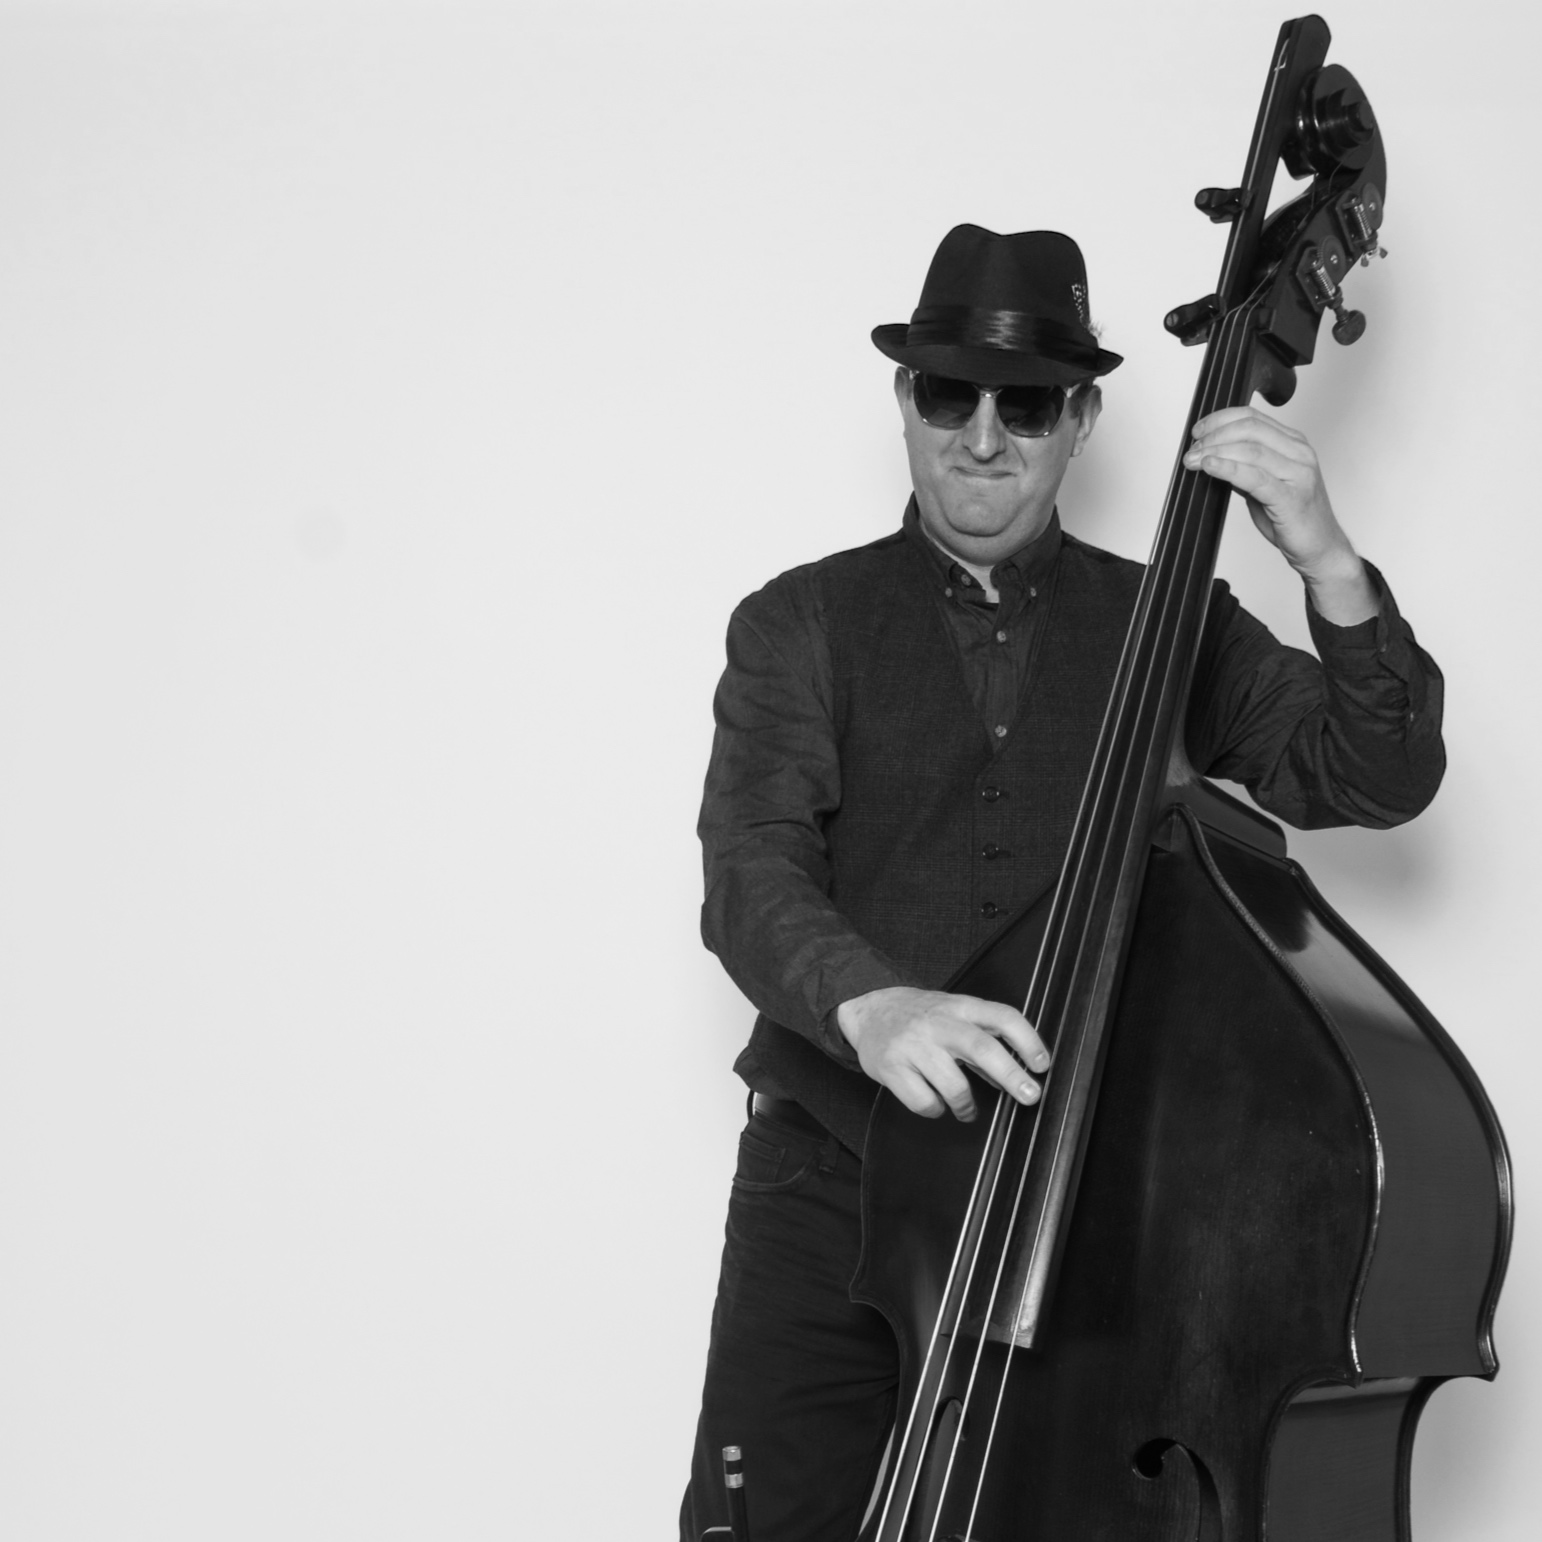 Jeff Kipperman - BASSIST